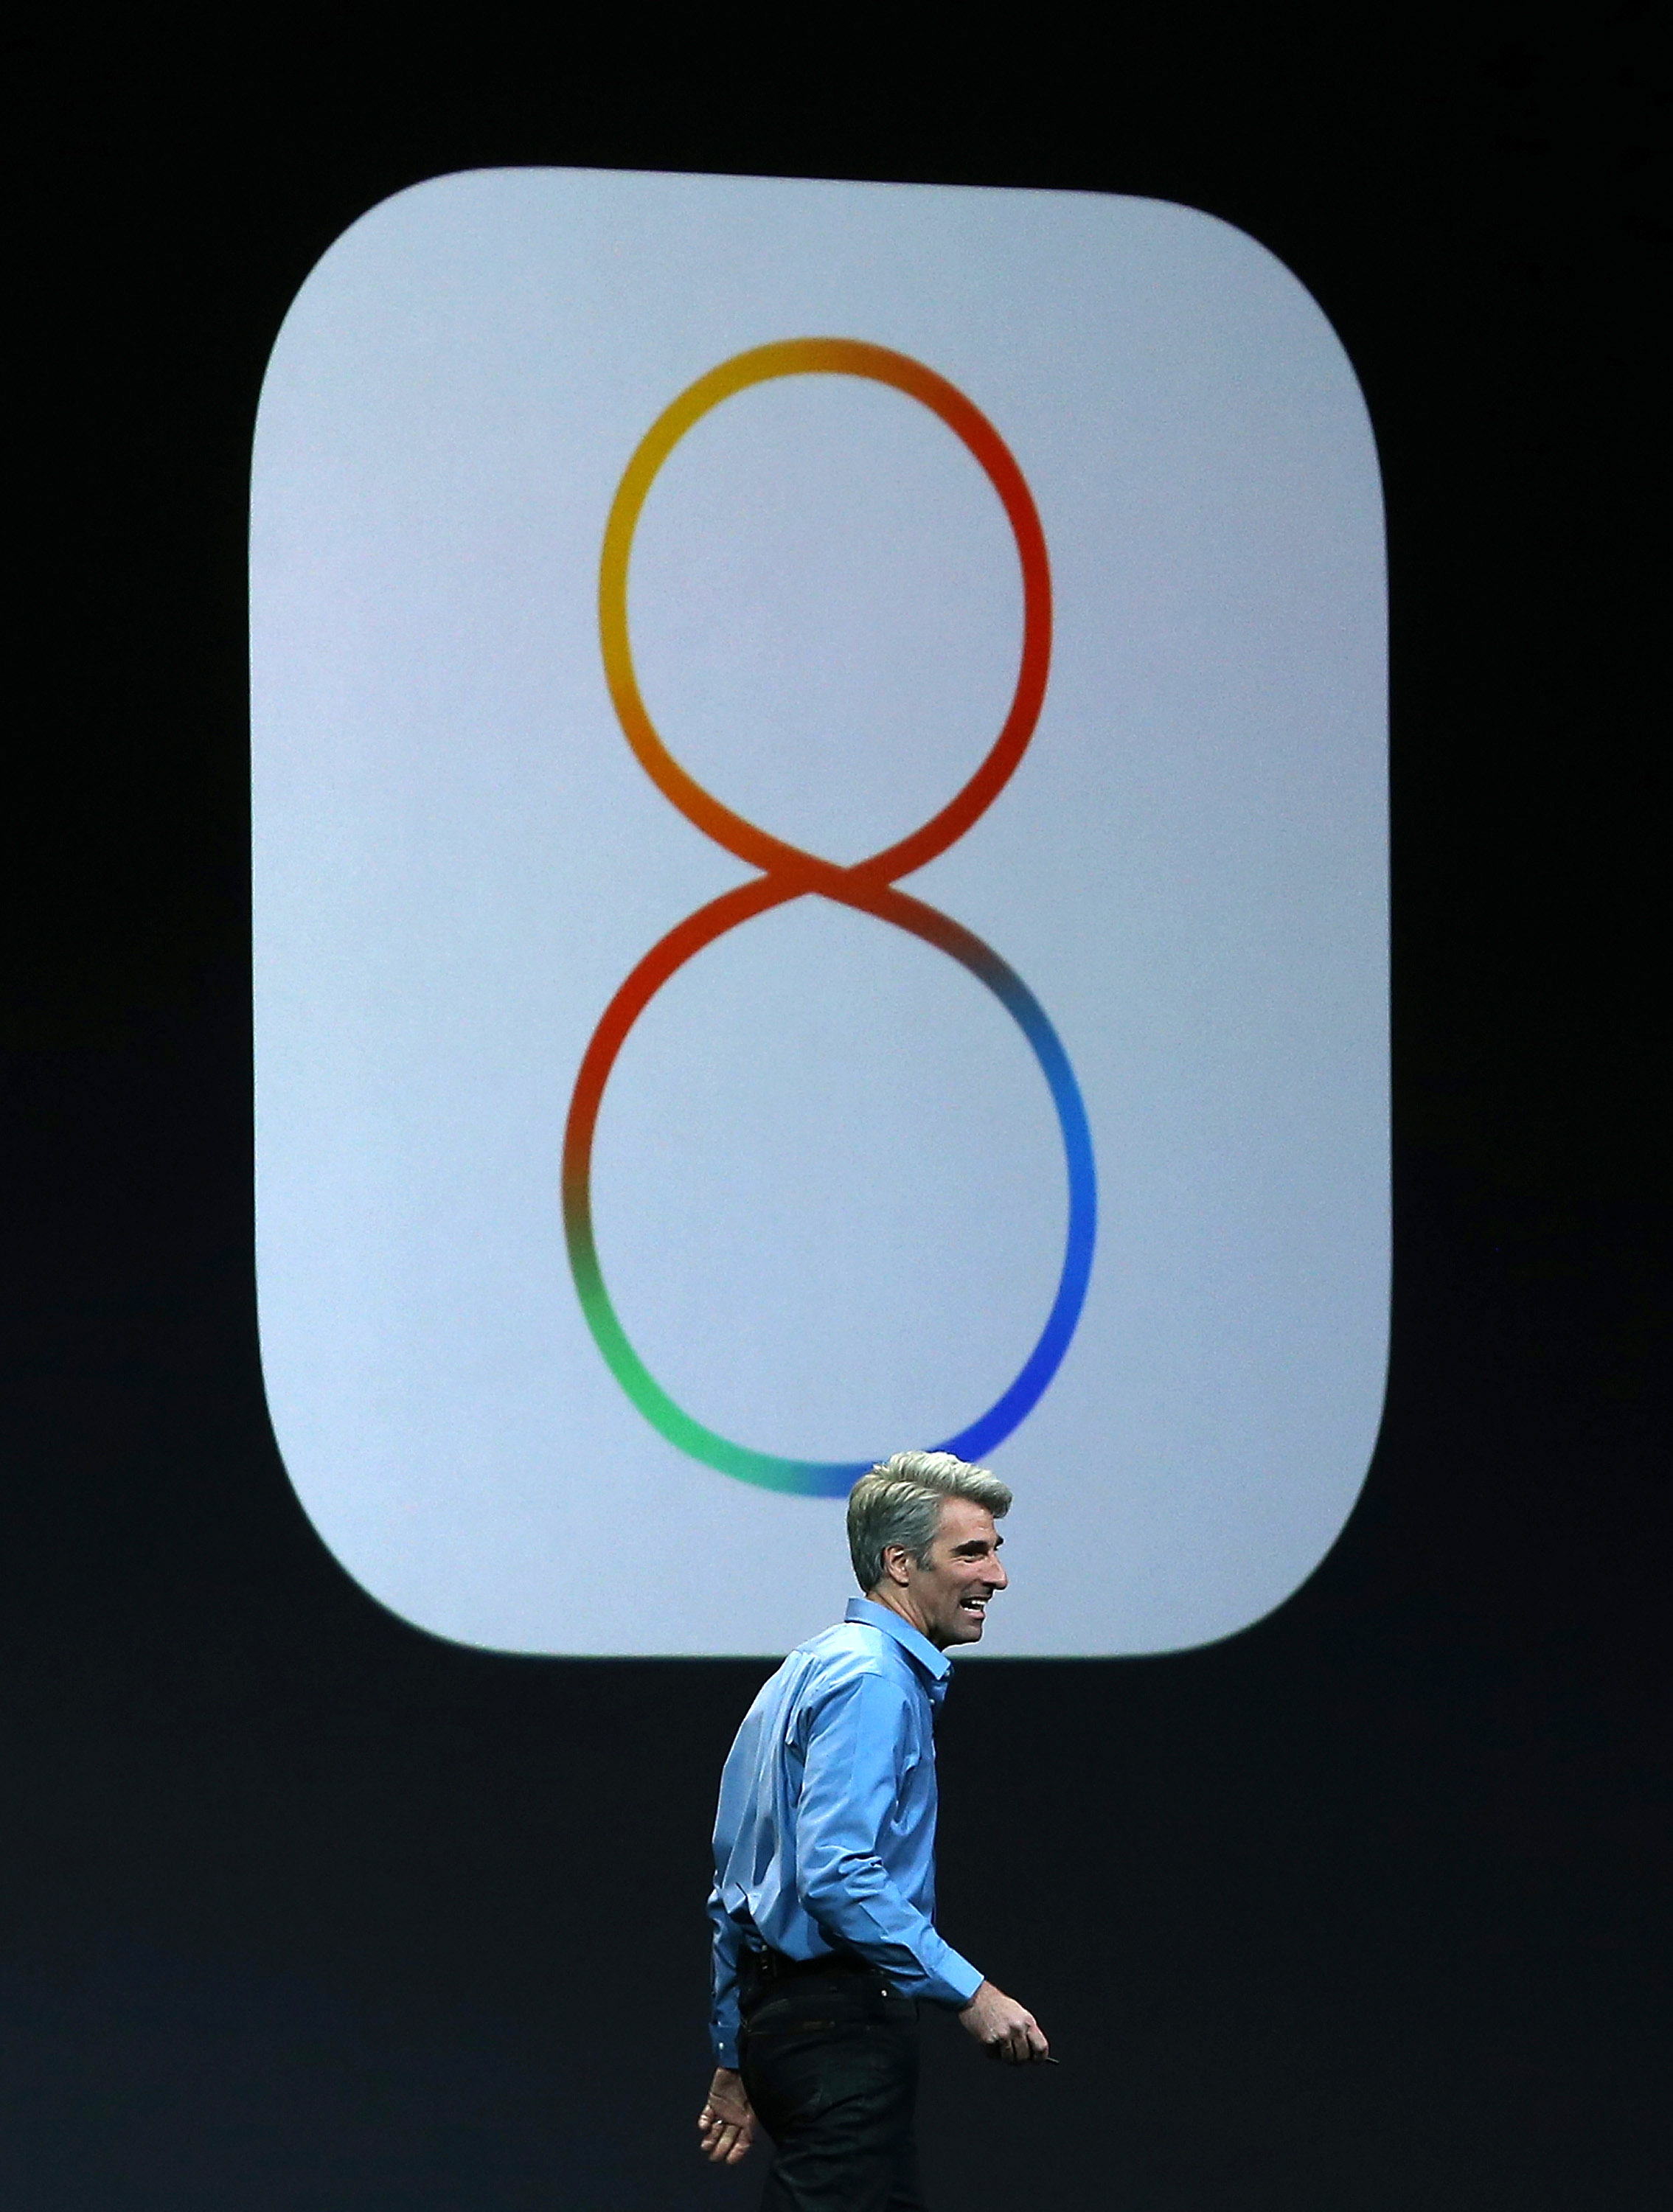 Apple Senior Vice President of Software Engineering Craig Federighi speaks during the Apple Worldwide Developers Conference at the Moscone West center on June 2, 2014 in San Francisco, California.